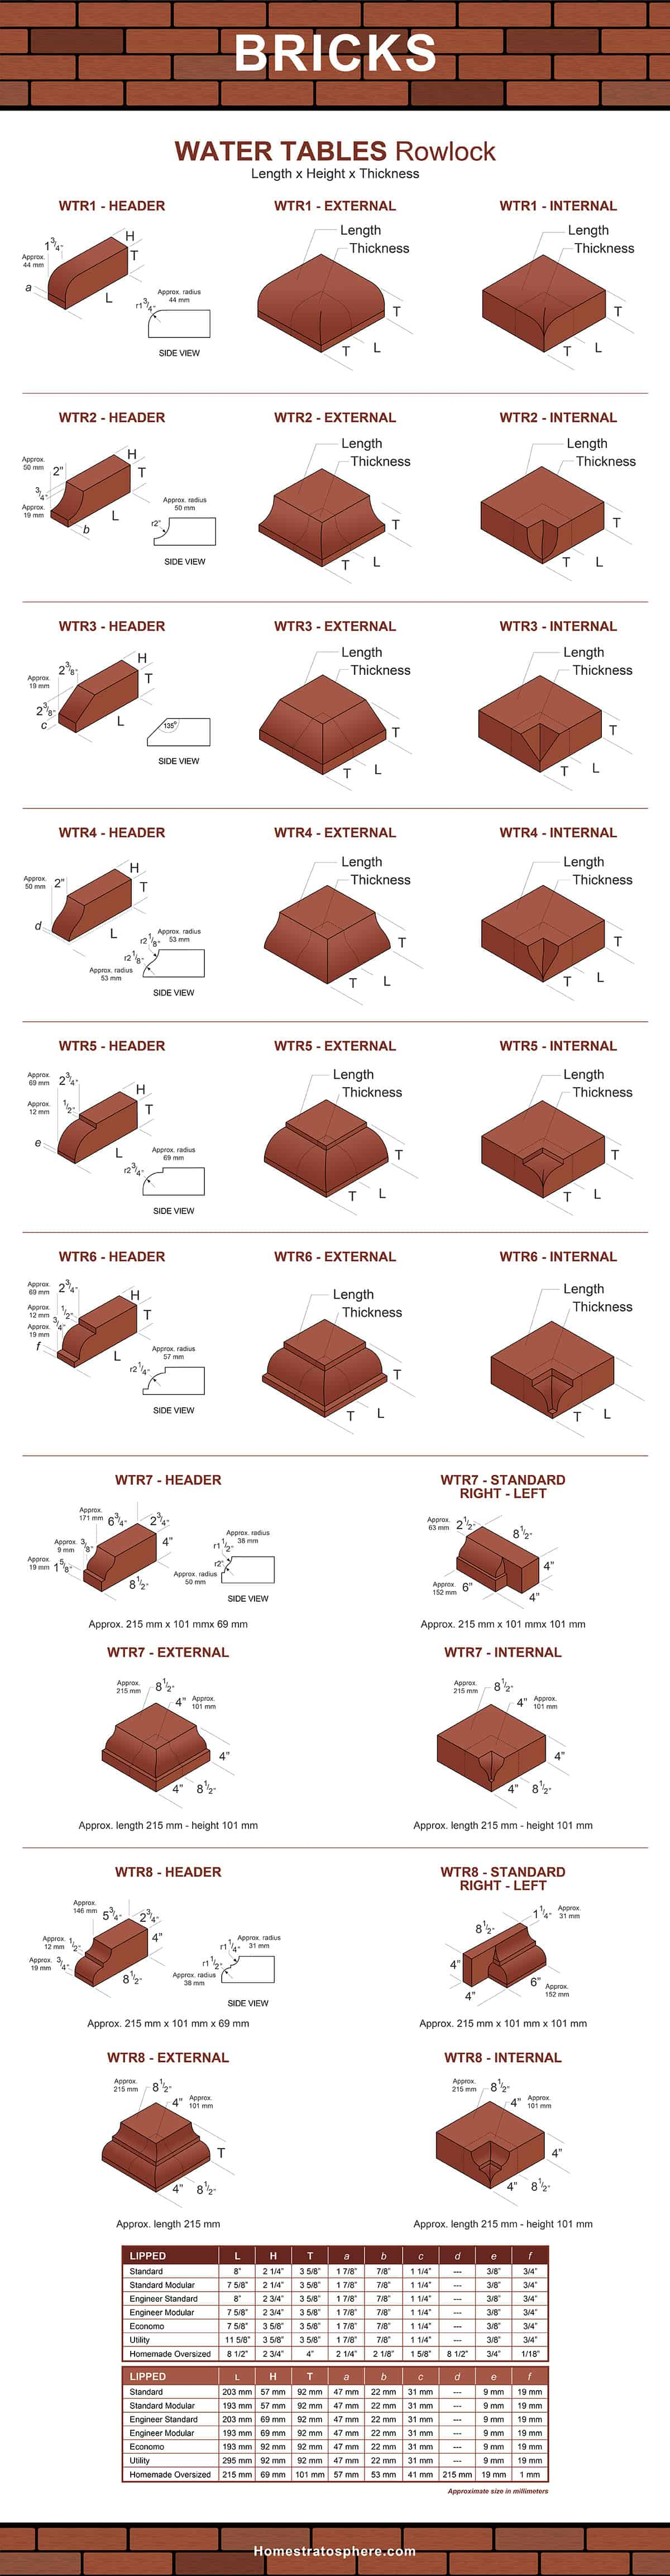 Watertable bricks - Rowlock chart